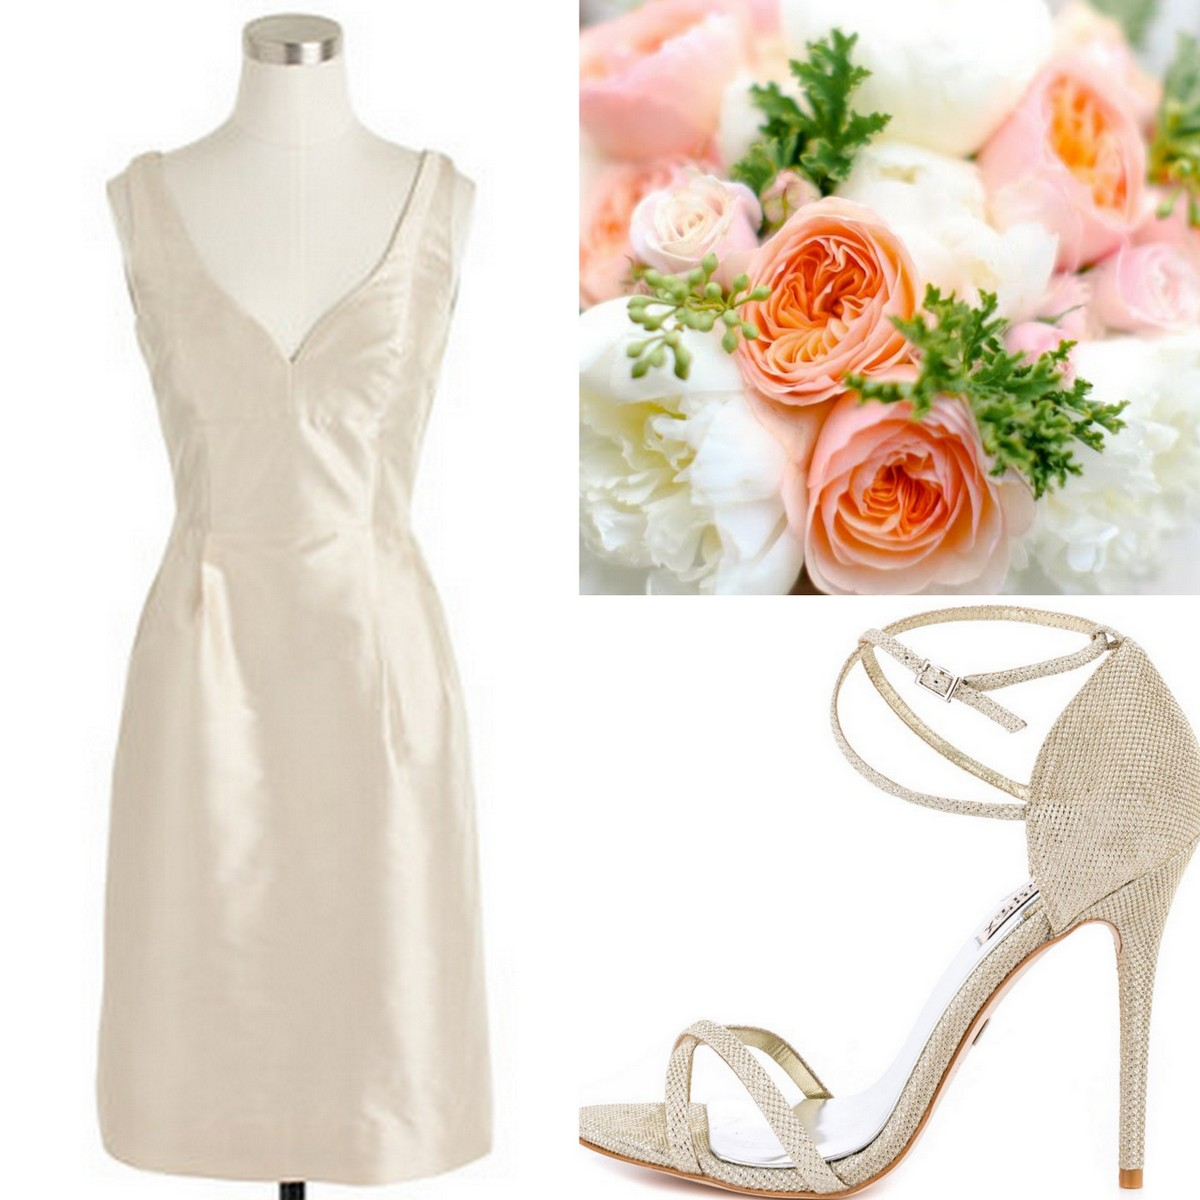 Style, Inspiration, & Design Beige Silk Duponi J.Crew Bridesmaid Dress with Neutral Strappy Sandal & Peach, Coral Bouquet